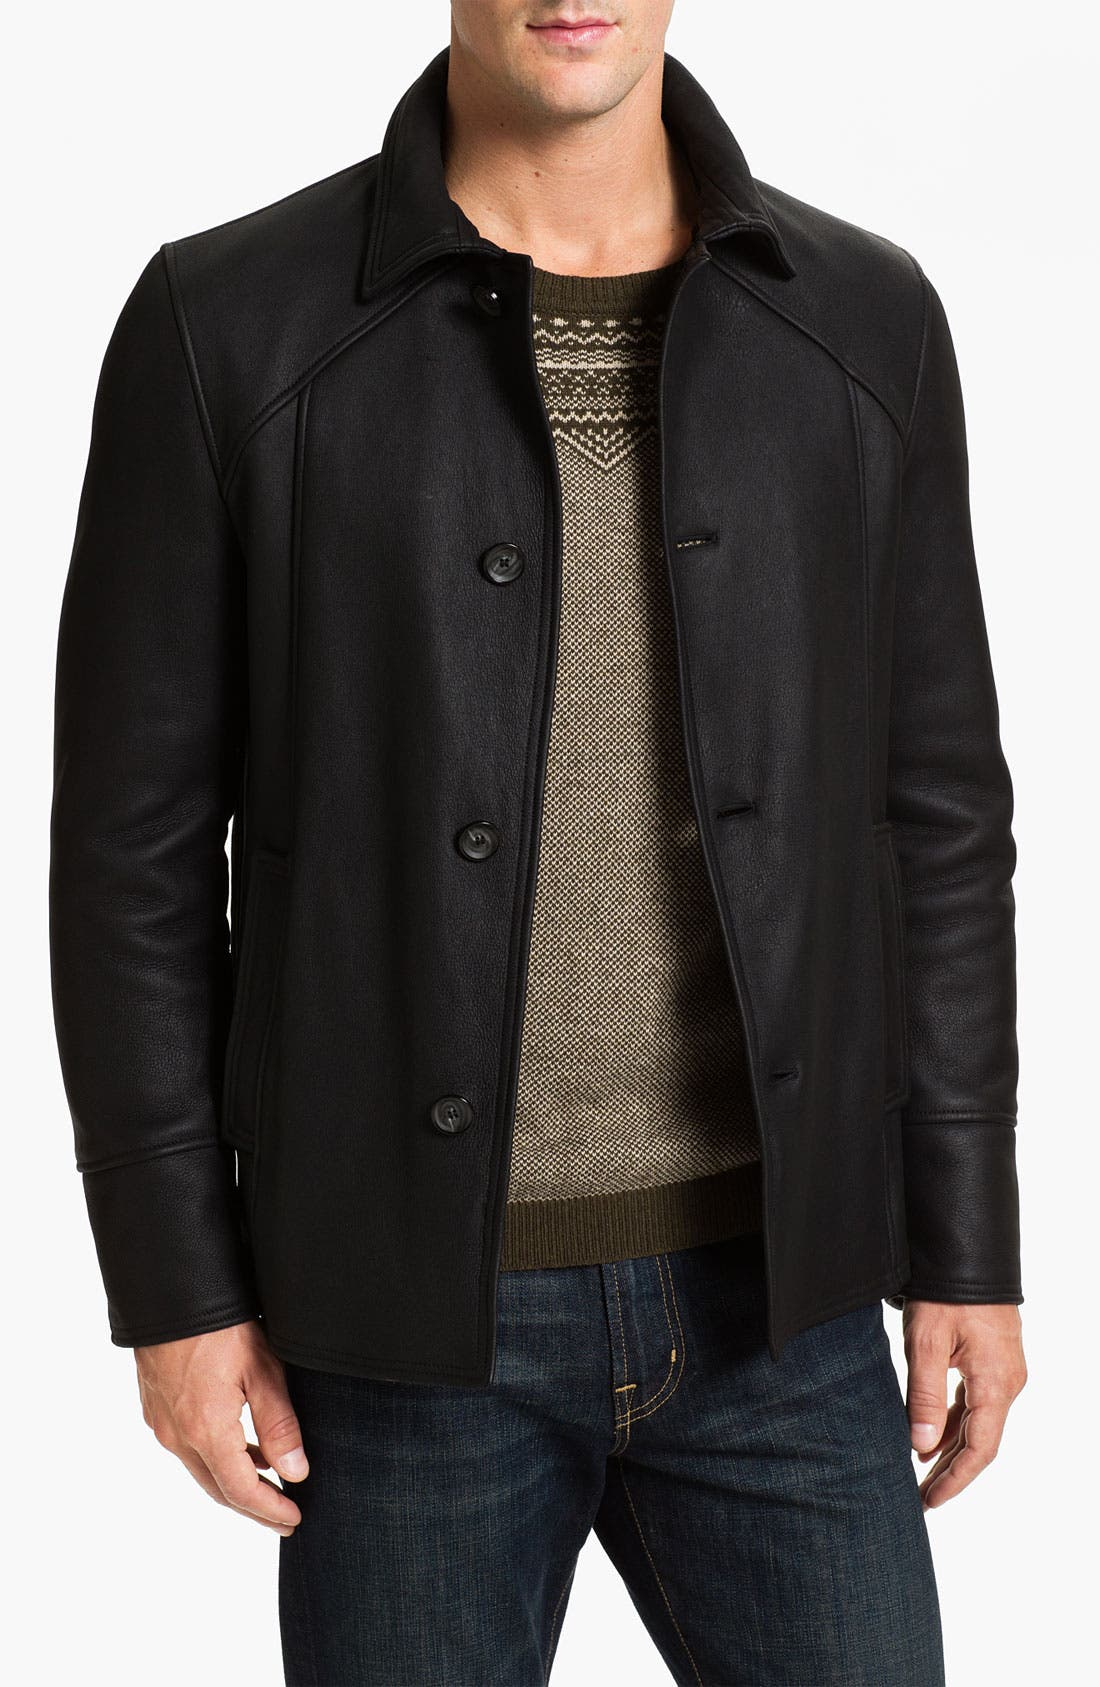 Alternate Image 1 Selected - Alex & Co. Single Breasted Leather Coat with Genuine Shearling Lining